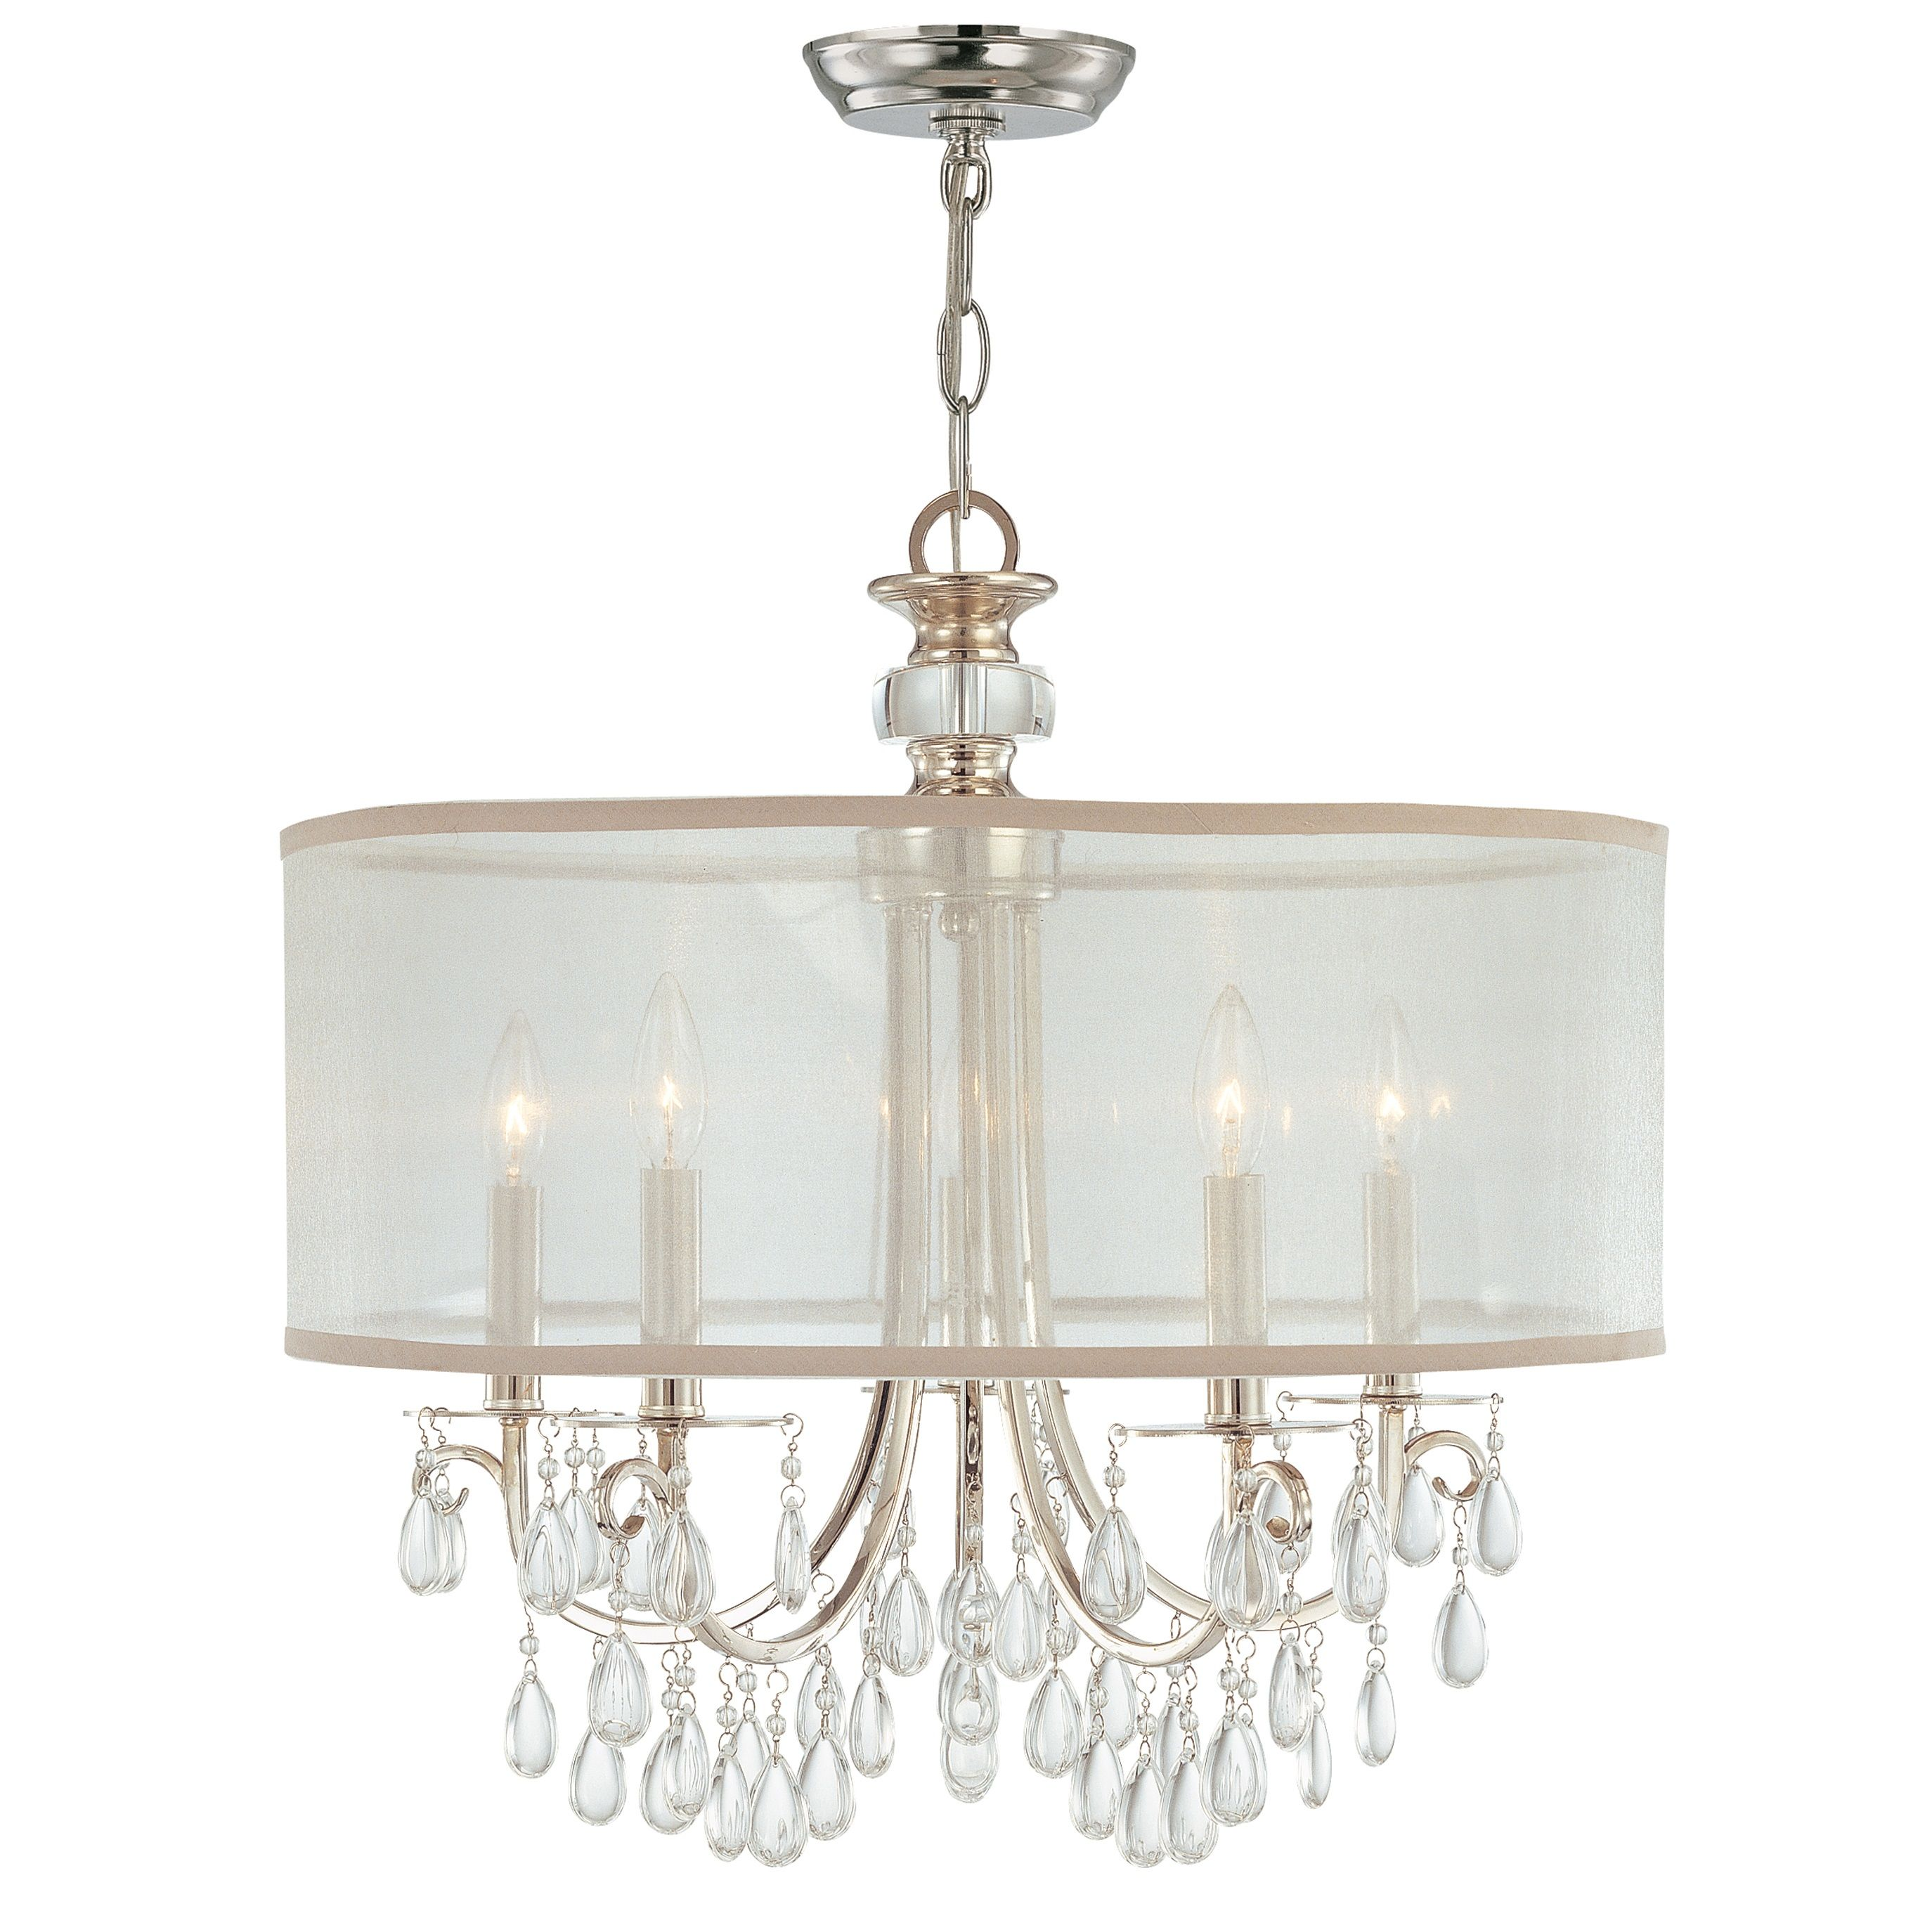 Crystorama Lighting Group 5625 Ch Polished Chrome Hampton 5 Light 24 Wide Drum Chandelier With Etruscan Smooth Teardrop Almond Crystals Faucet